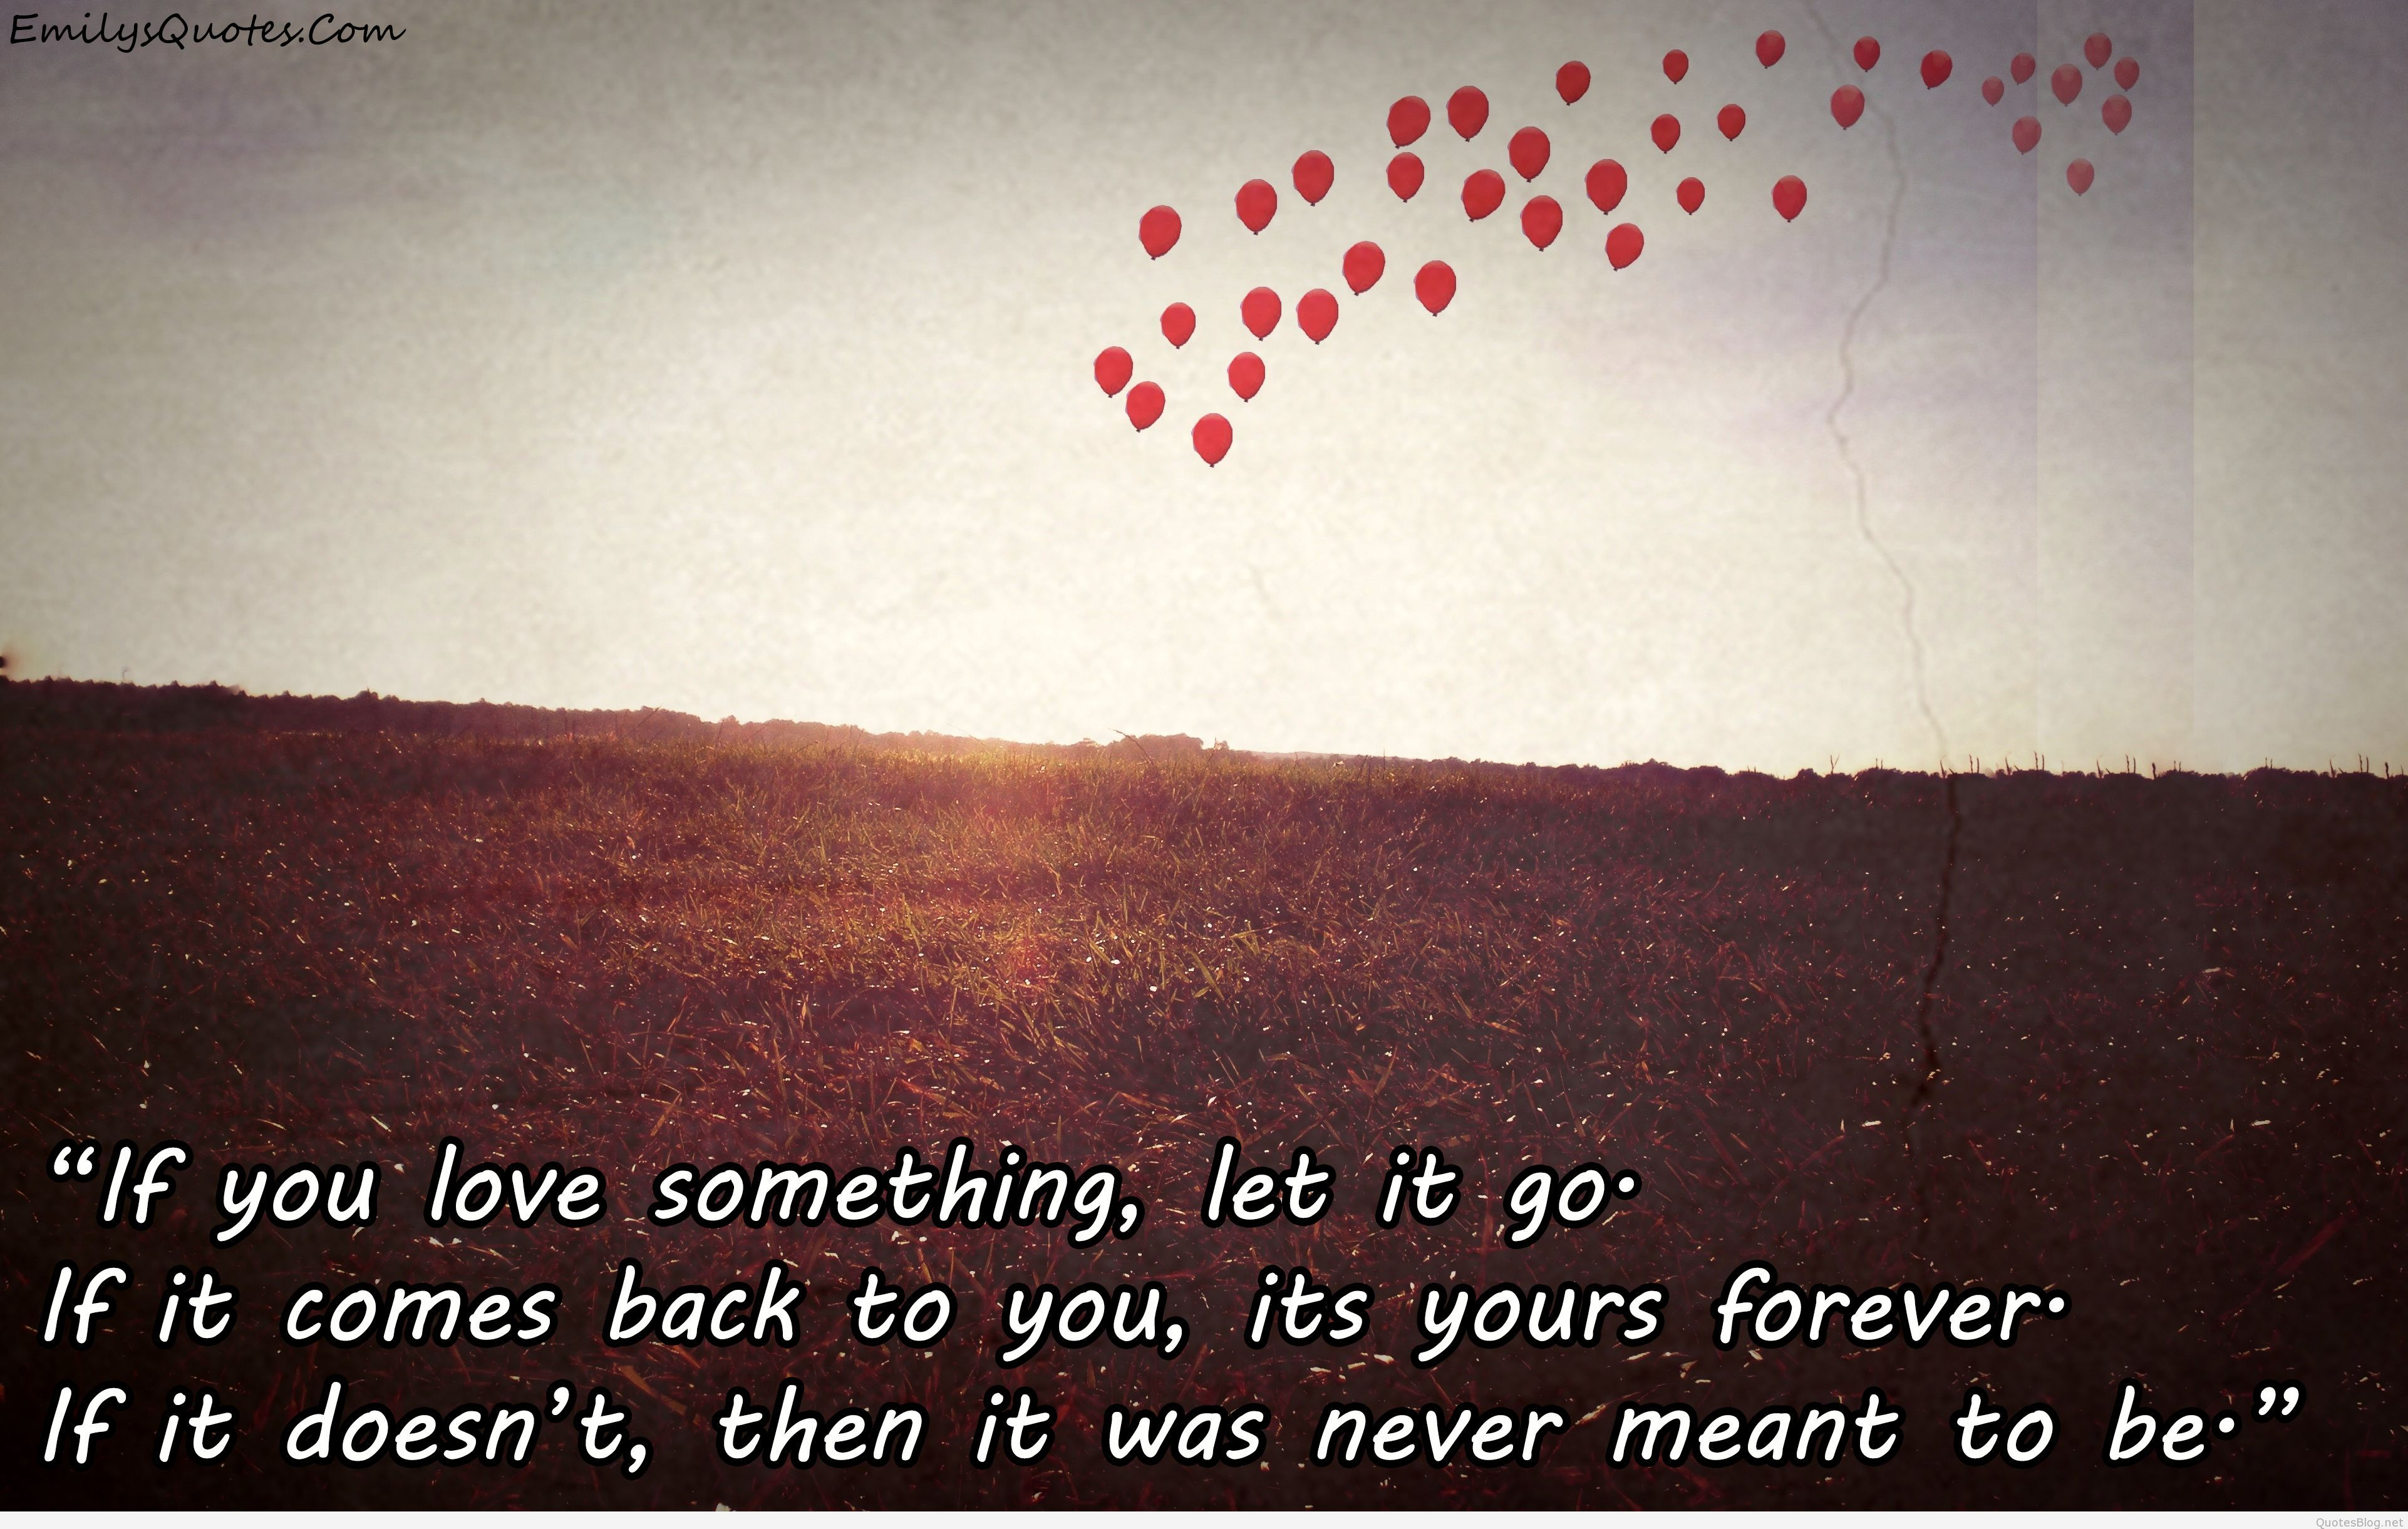 """Someday someone is going to thank you for letting me go"" More sad quotes about letting go"